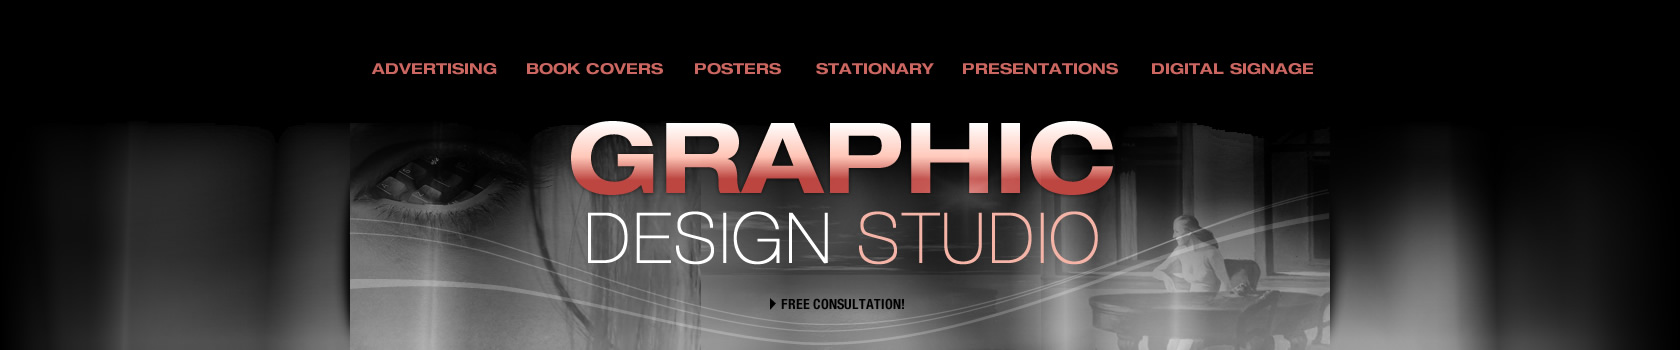 16 graphic banner design ideas images banner design templates